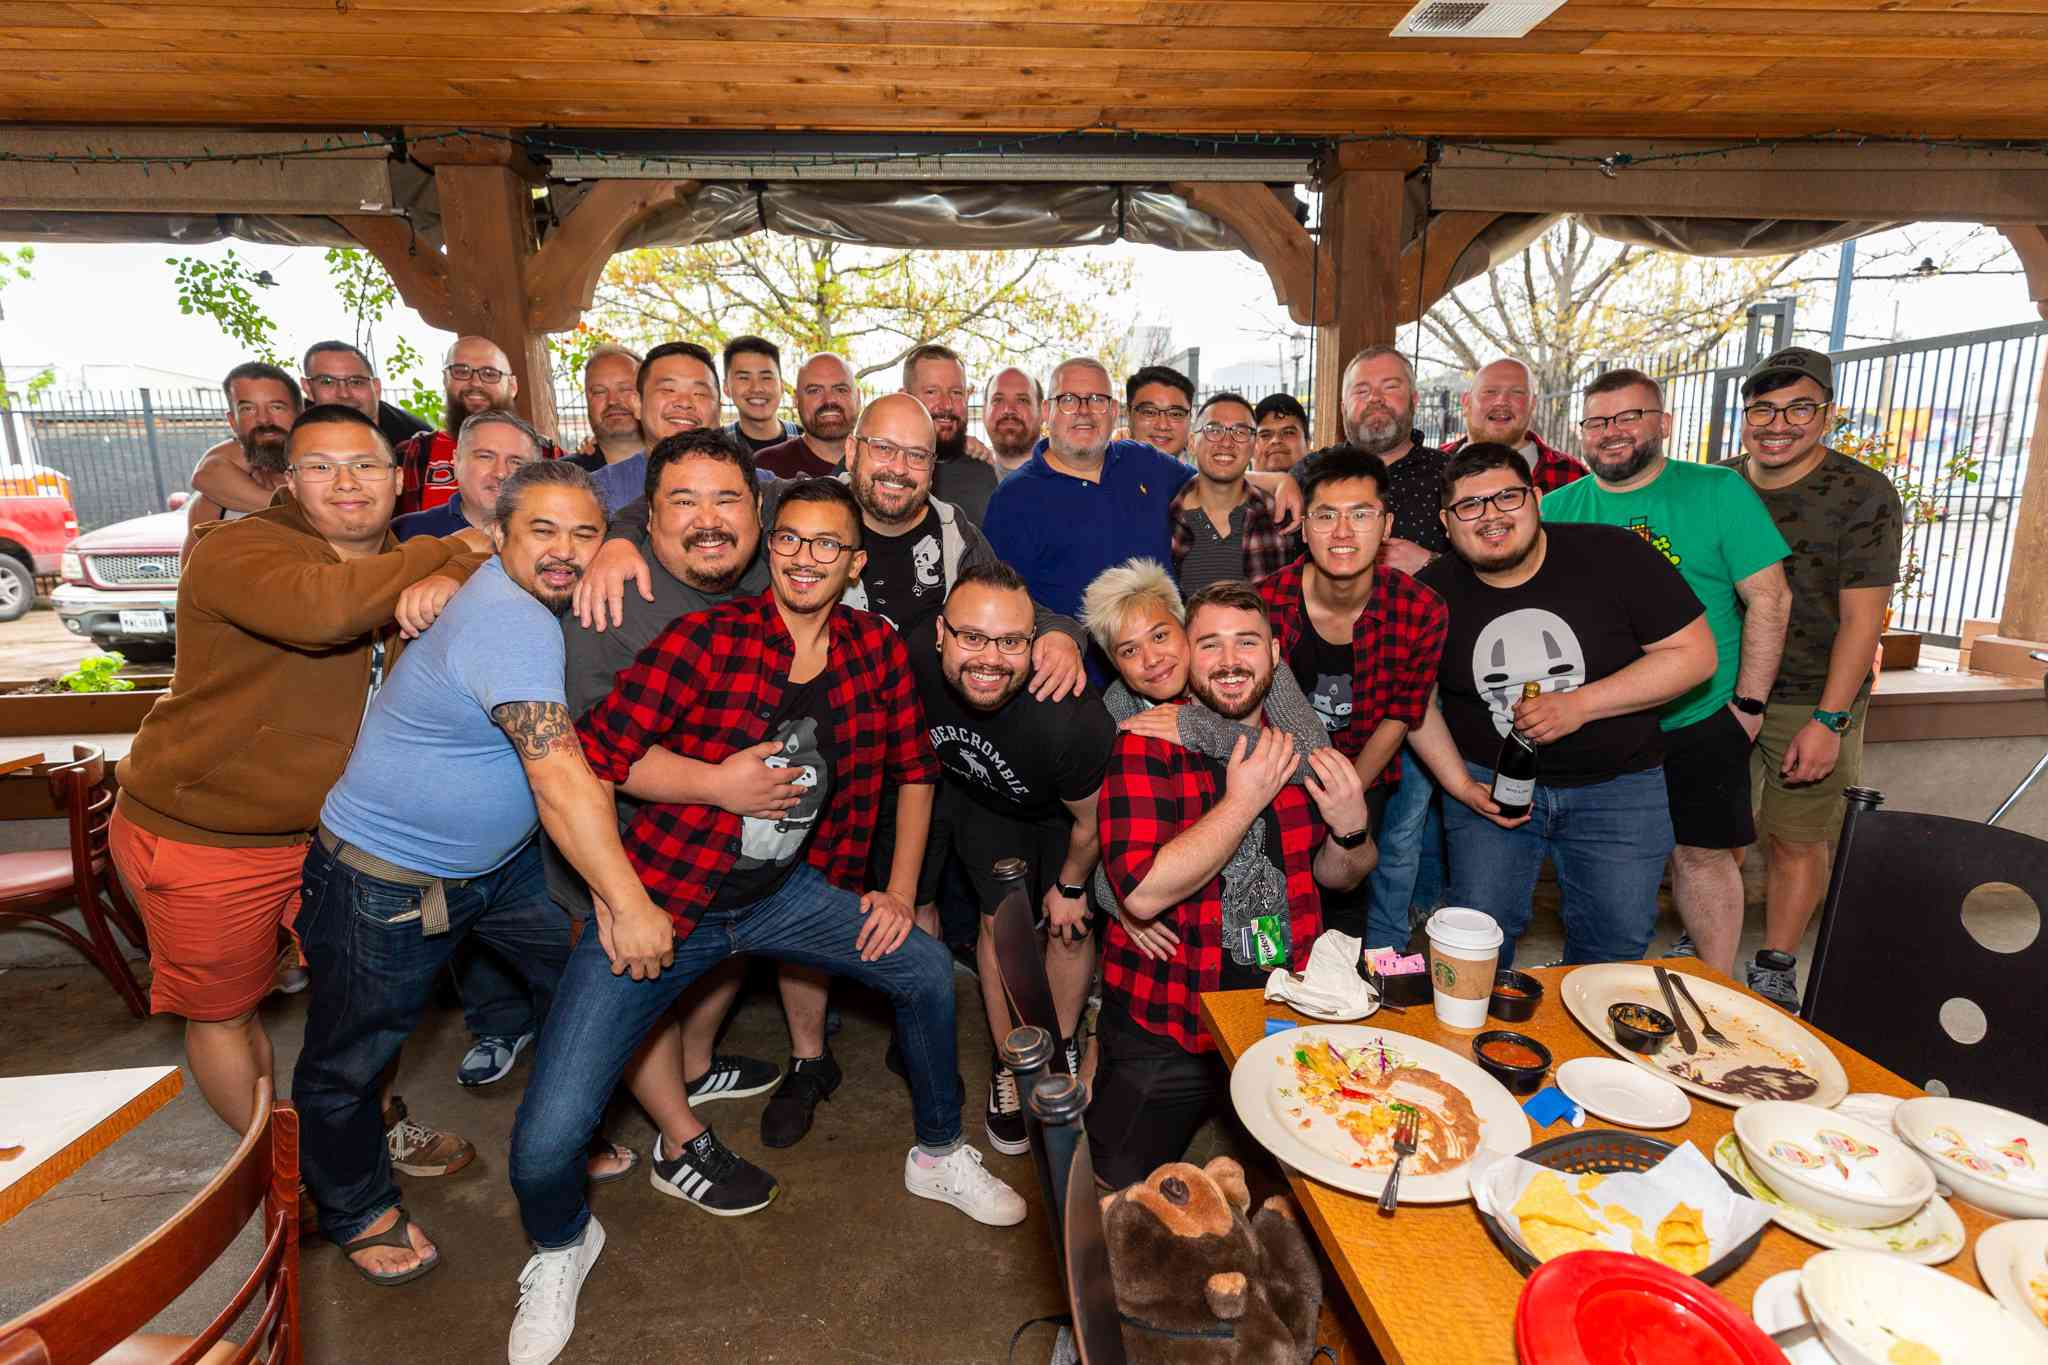 A group of men at the Texas Bear Round-Up